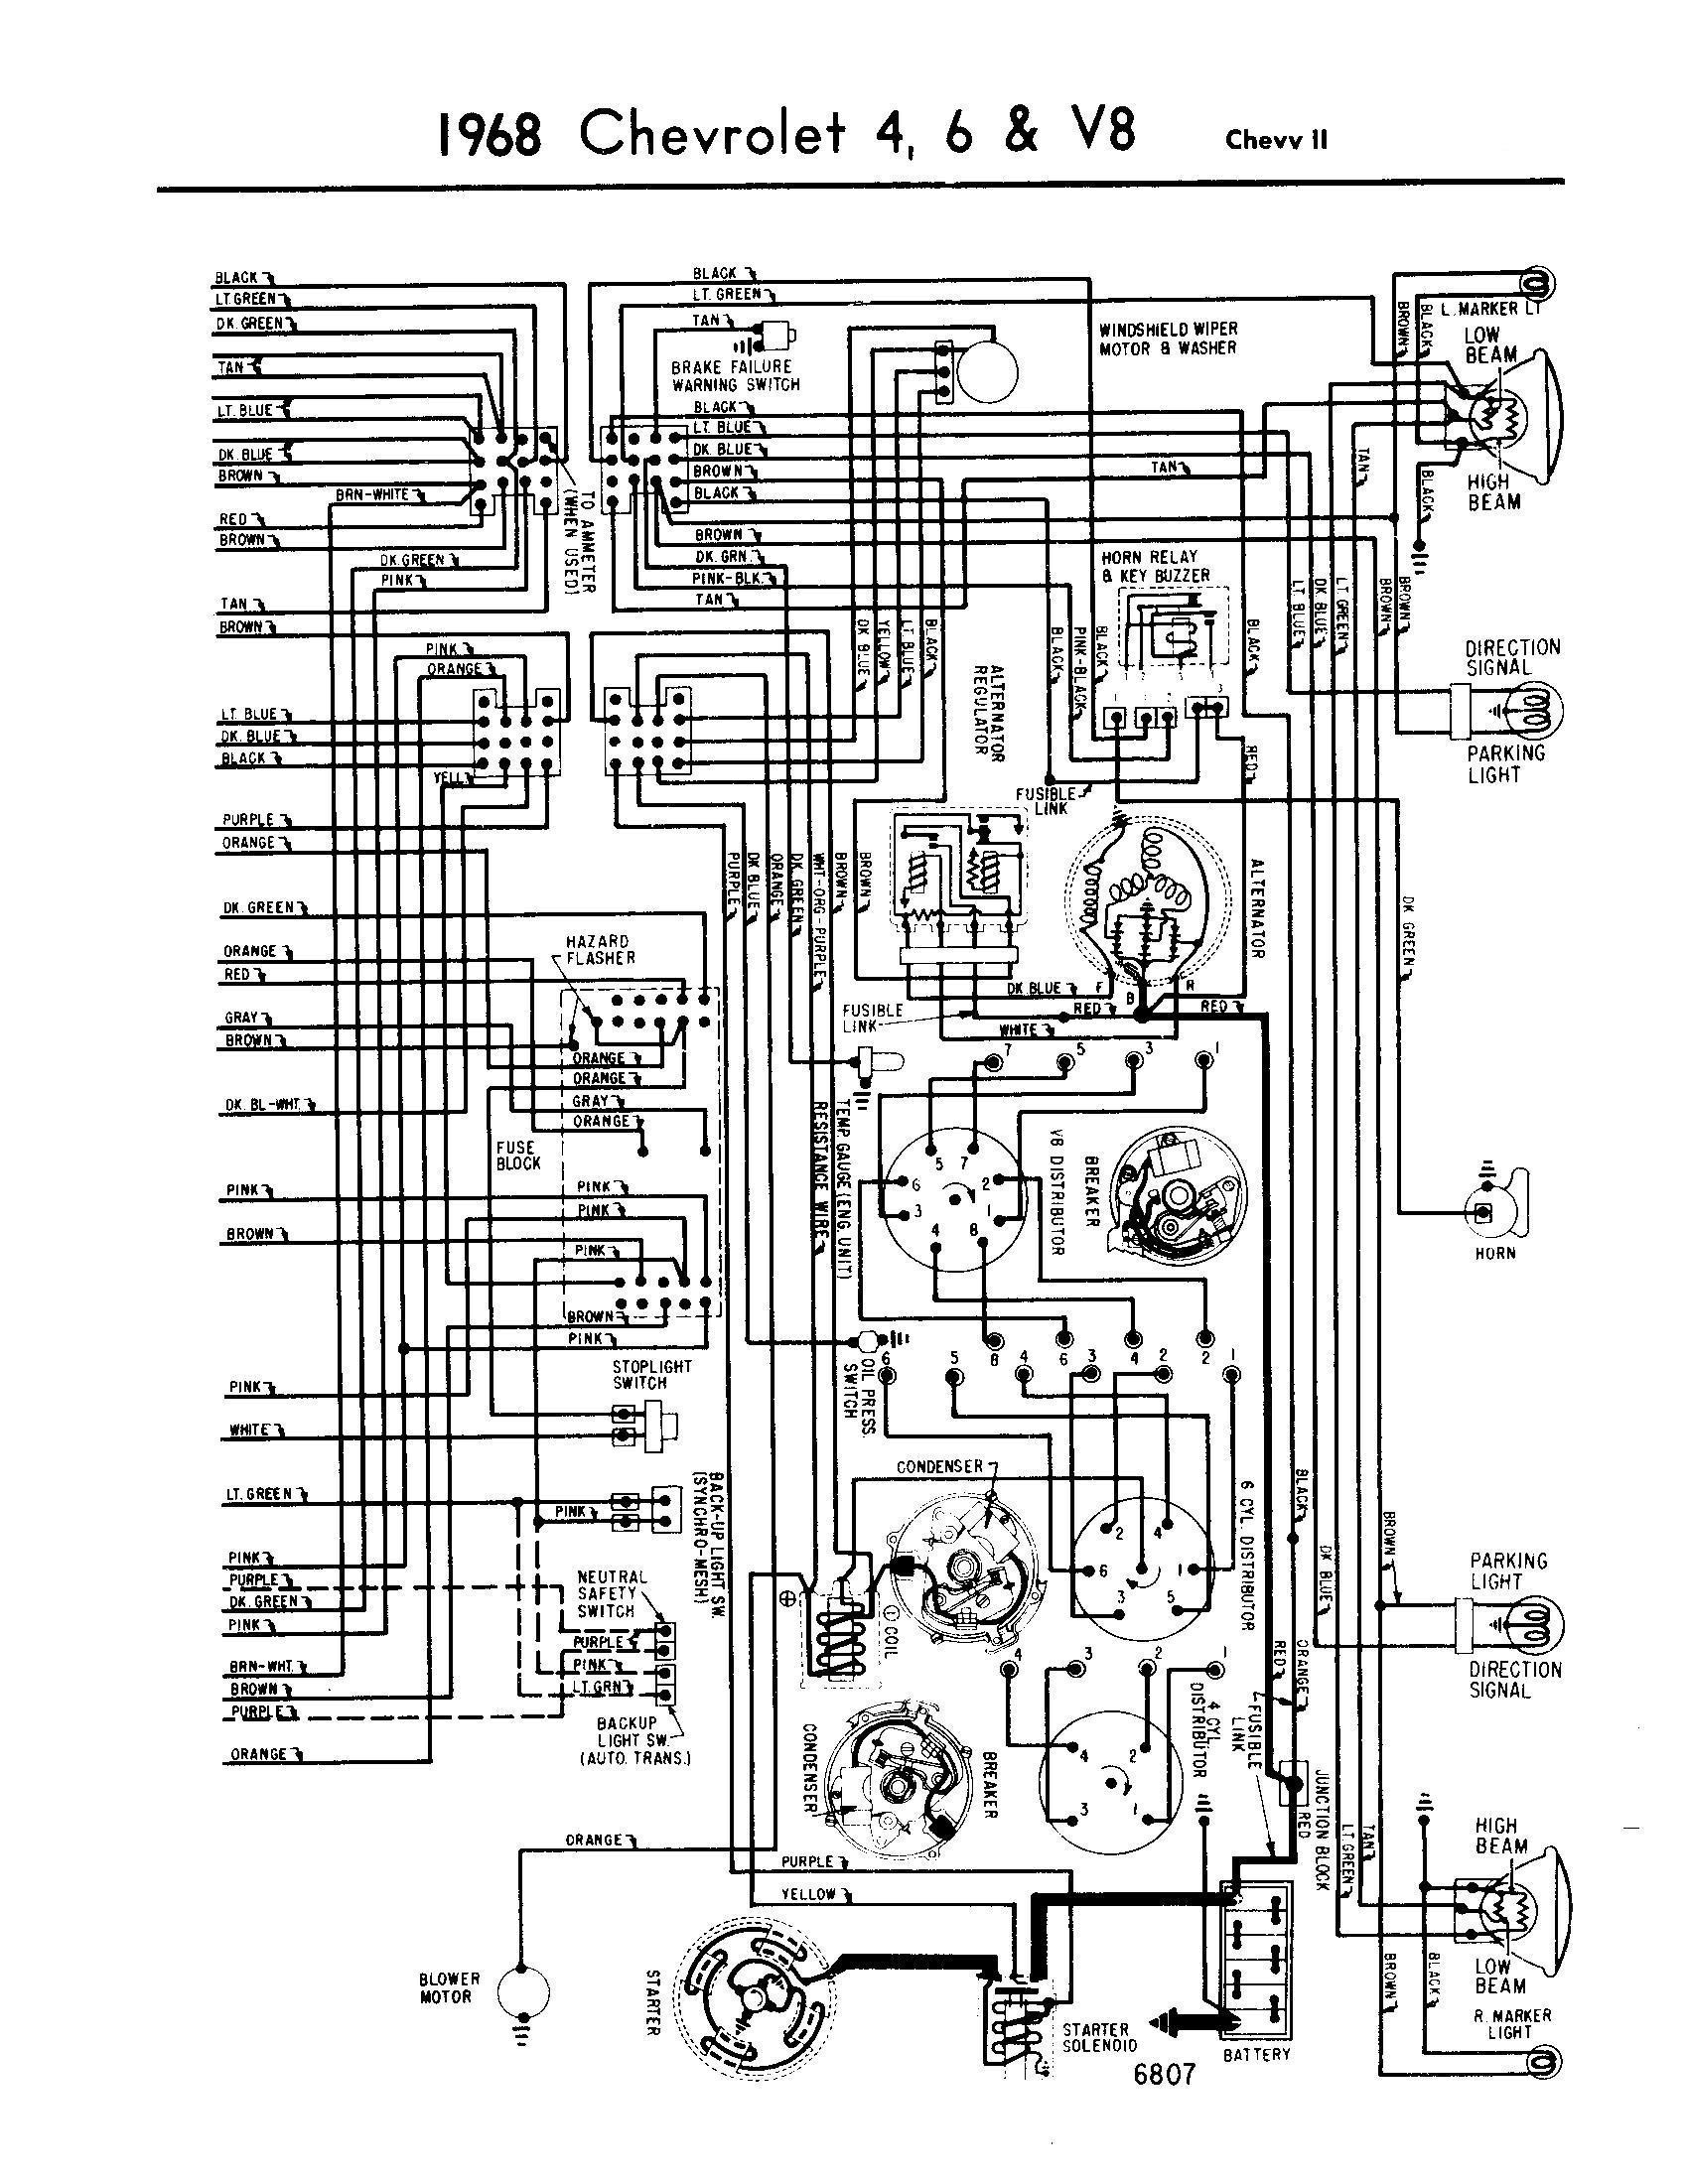 68 Ford Headlight Switch Wiring Diagram Free Picture 1968 1970 Camaro Worksheet And Rh Bookinc Co 05